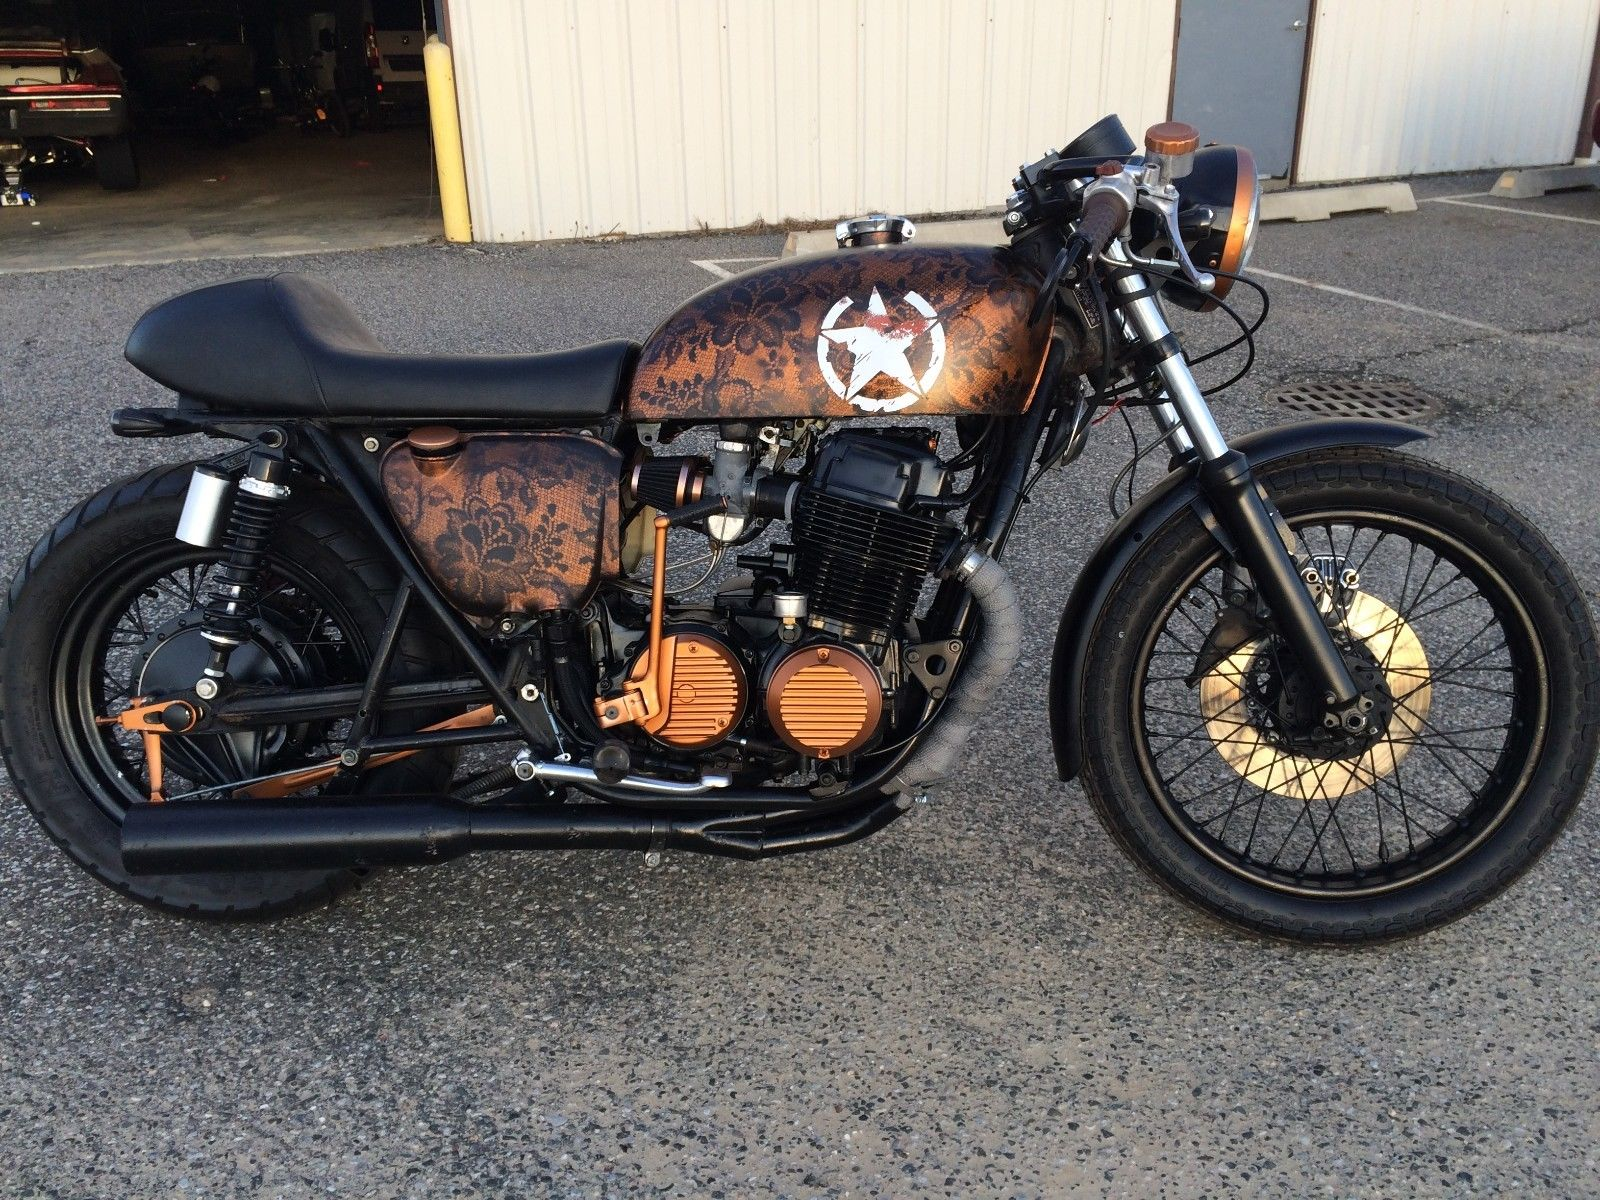 Nicely built 1975 Honda CB for sale